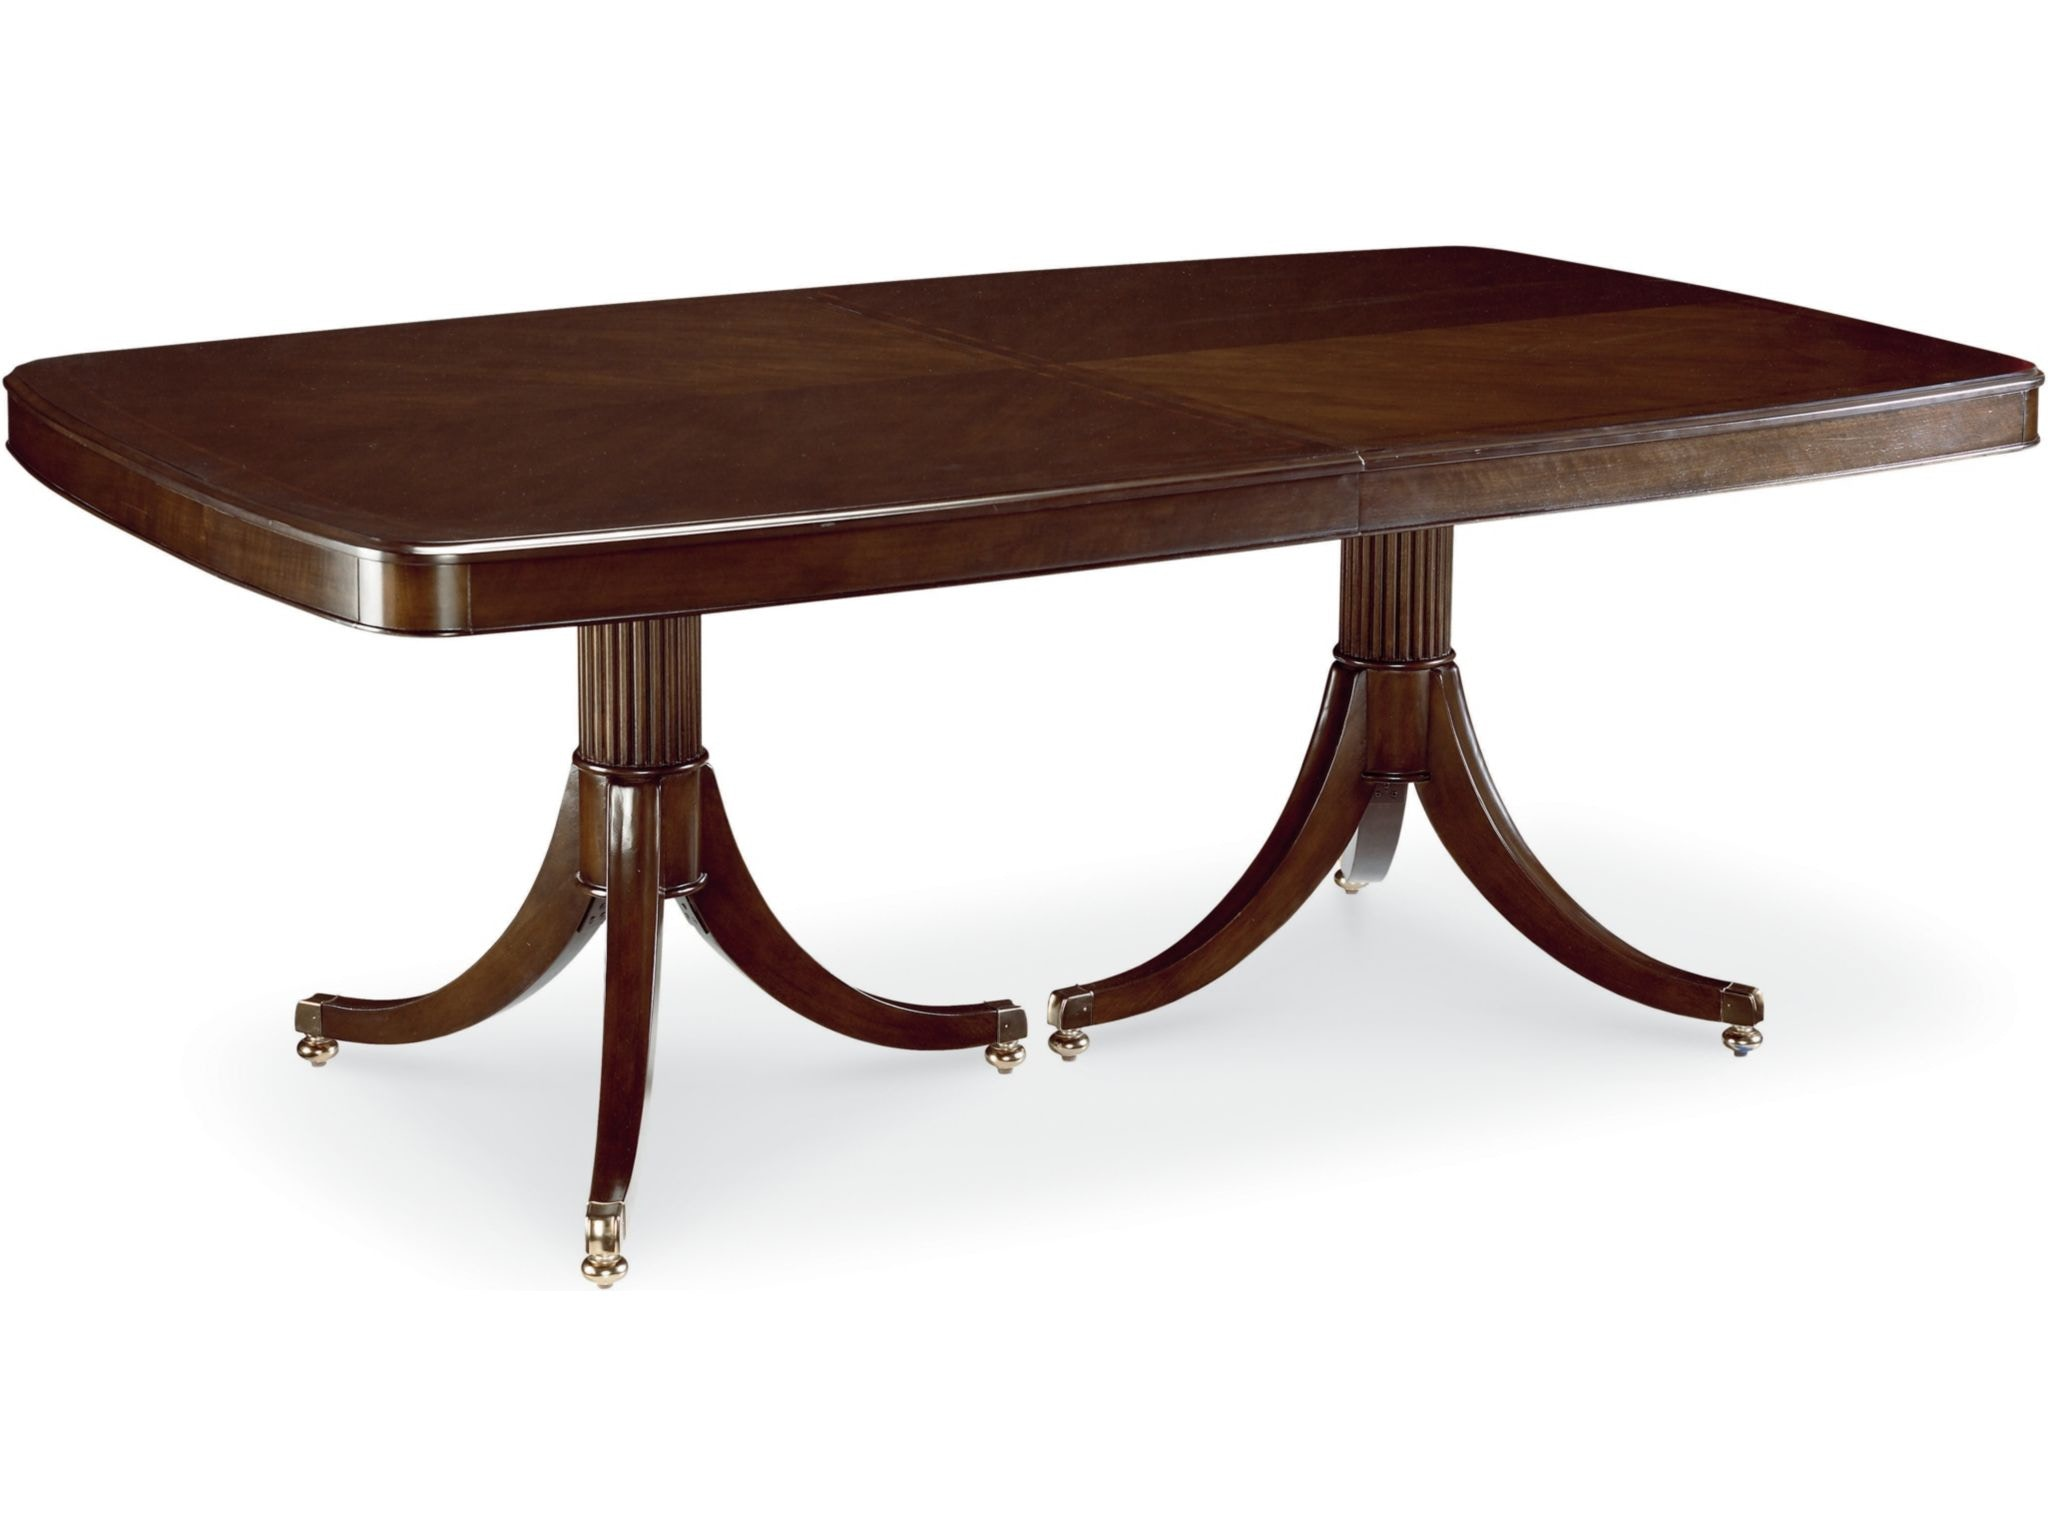 Thomasville Dining Room Double Pedestal Dining Table 45521 772 At Lauters  Fine Furniture